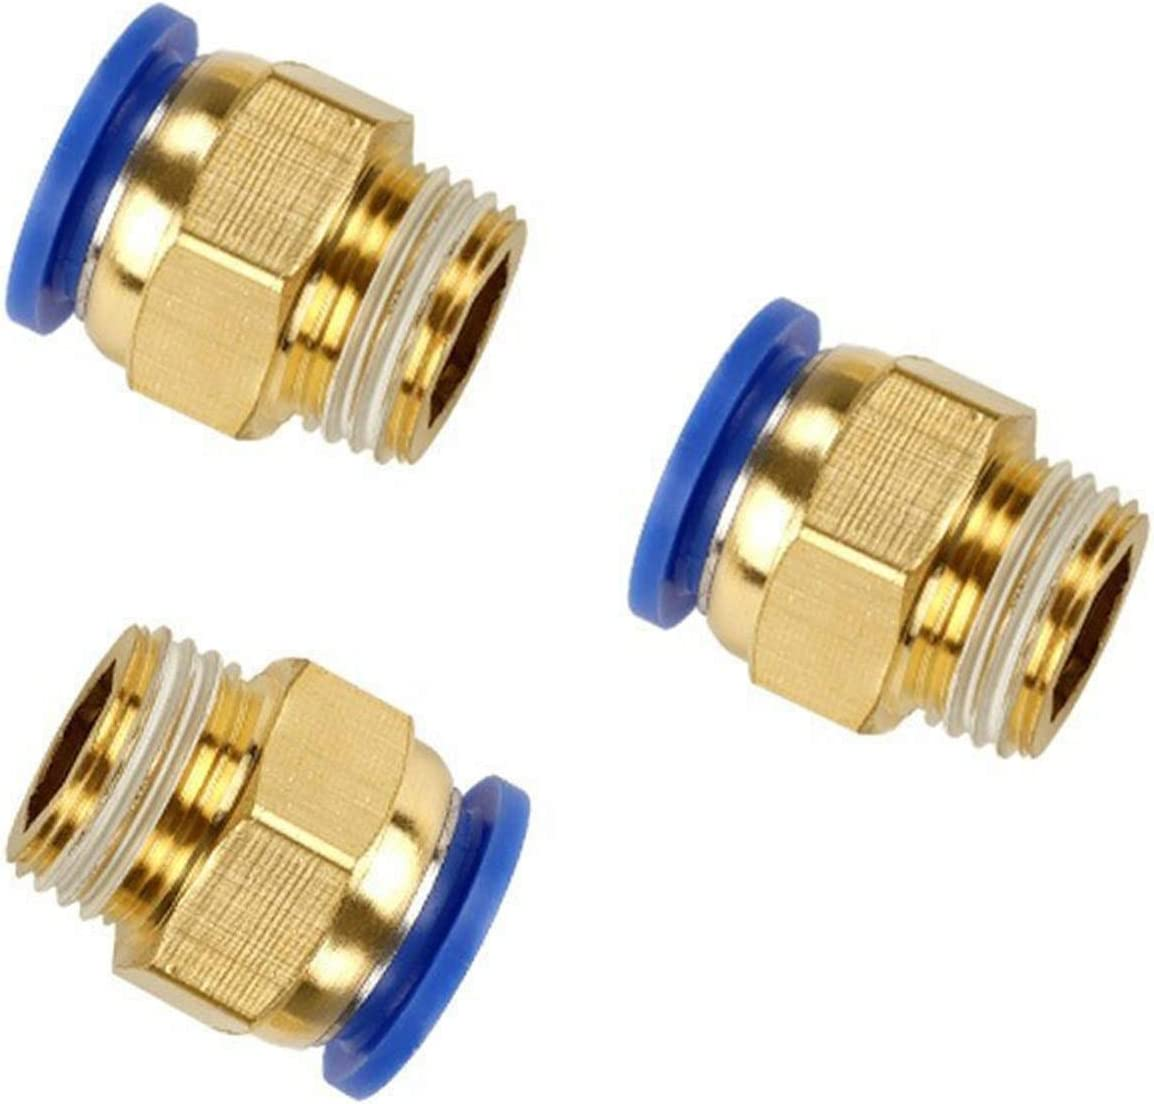 Self-drive tool 10Pcs Air Pneumatic 4mm 6mm 8mm 10mm Hose Tube 1//4 1//2 1//8 3//8 BSP Male Thread Air Pipe Connector Quick Coupling Brass Fitting Color : 16mm Tube, Specification : 1//4